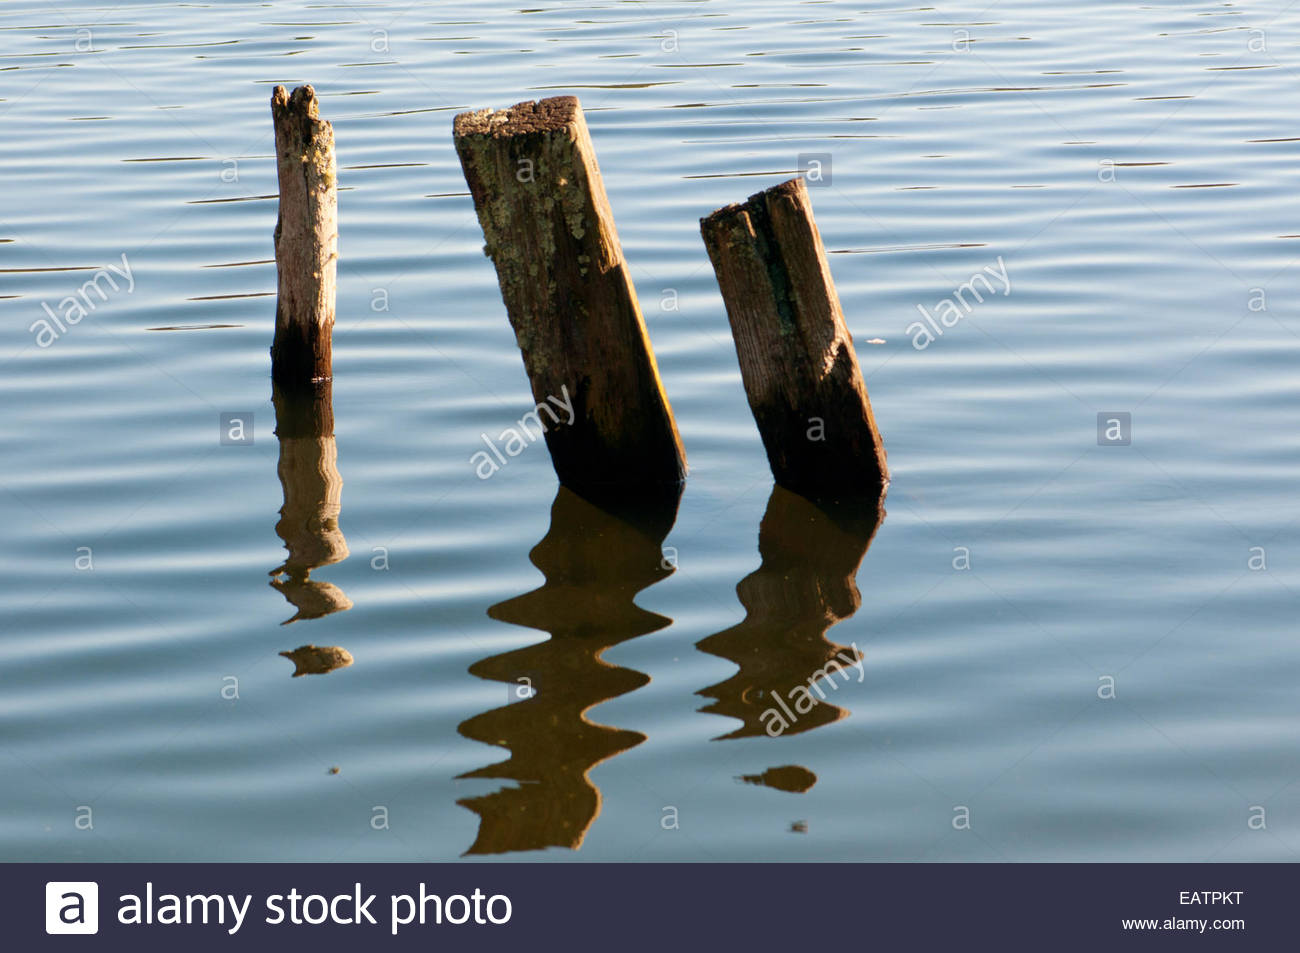 Wooden posts and their reflections in rippling water. - Stock Image